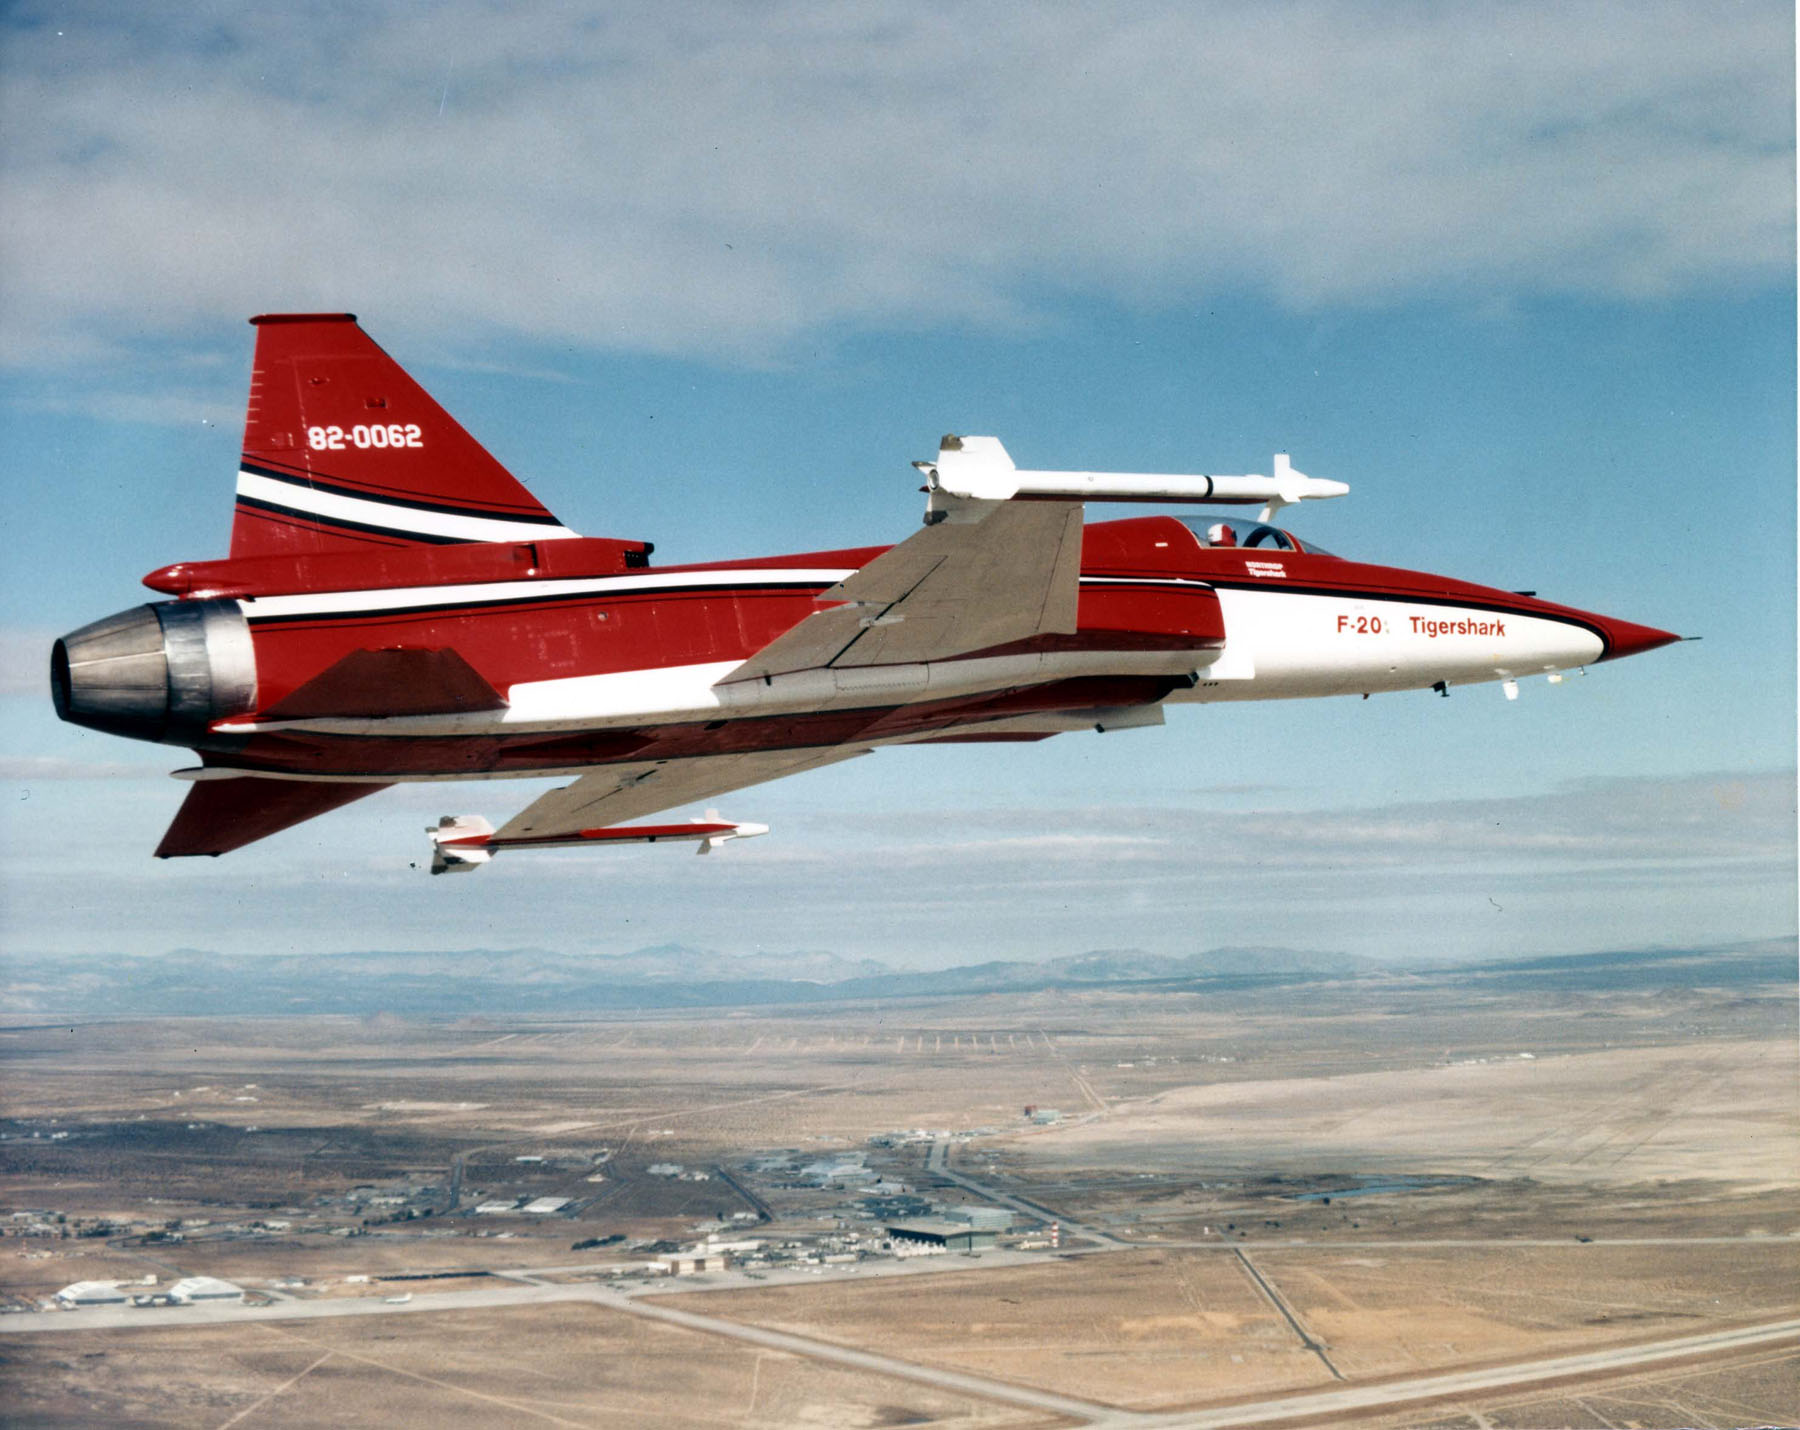 http://upload.wikimedia.org/wikipedia/commons/d/d7/F-20_Northrop_colors_in_flight.jpg